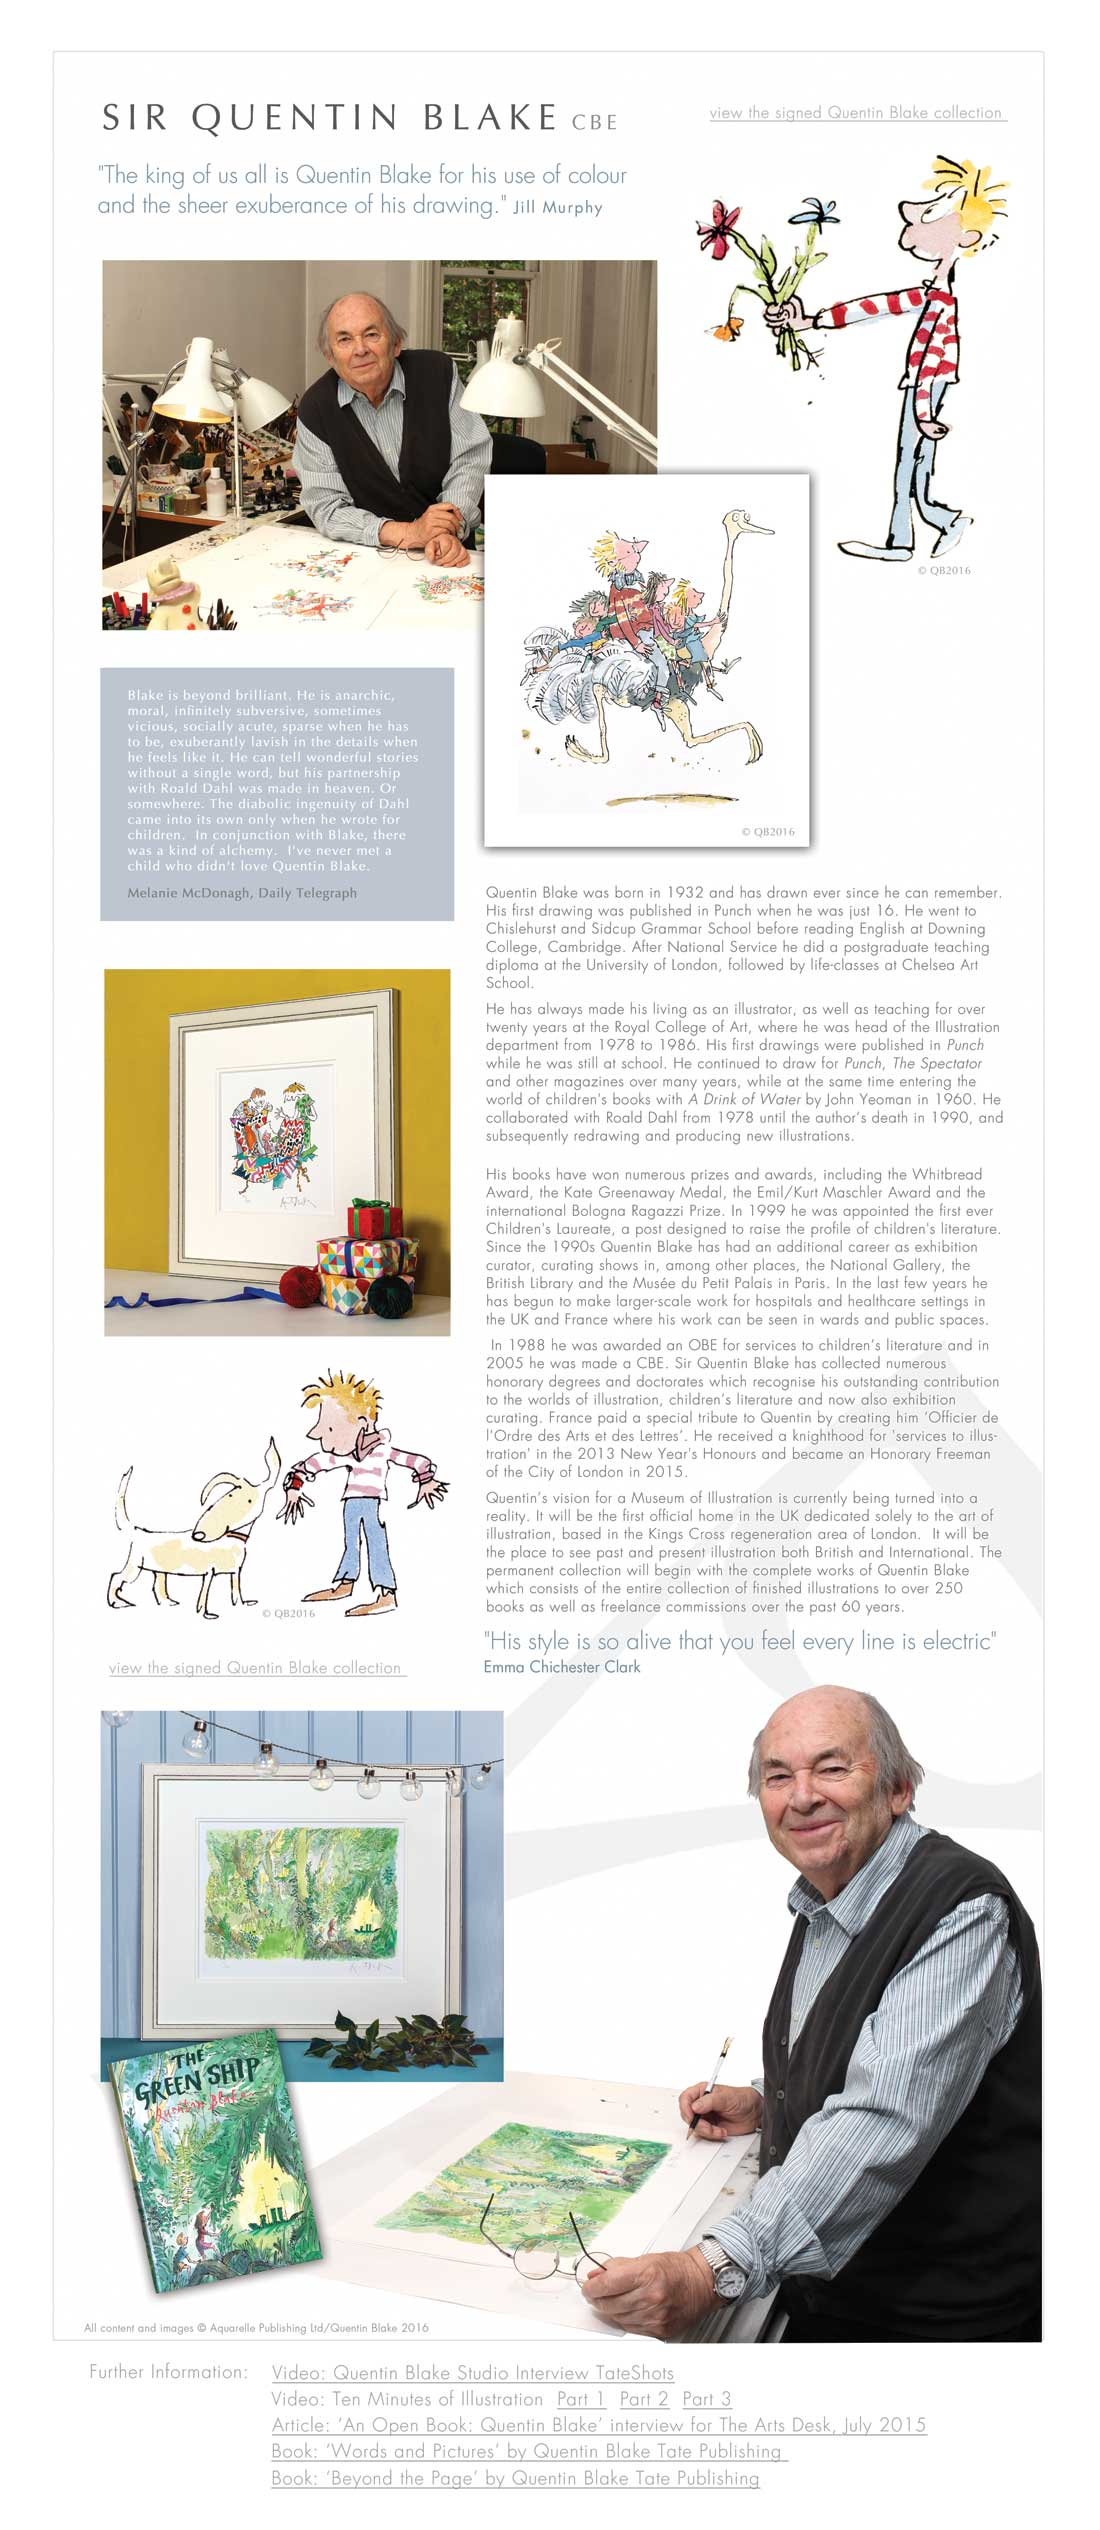 "SIR QUENTIN BLAKE CBE ""The king of us all is Quentin Blake for his use of colour  and the sheer exuberance of his drawing."" Jill Murphy Blake is beyond brilliant. He is anarchic,  moral, infinitely subversive, sometimes  vicious, socially acute, sparse when he has  to be, exuberantly lavish in the details when  he feels like it. He can tell wonderful stories  without a single word, but his partnership  with Roald Dahl was made in heaven. Or  somewhere. The diabolic ingenuity of Dahl  came into its own only when he wrote for  children.  In conjunction with Blake, there  was a kind of alchemy.  I've never met a  child who didn't love Quentin Blake.  Melanie McDonagh, Daily Telegraph Quentin Blake was born in 1932 and has drawn ever since he can remember. His first drawing was published in Punch when he was just 16. He went to Chislehurst and Sidcup Grammar School before reading English at Downing College, Cambridge. After National Service he did a postgraduate teaching diploma at the University of London, followed by life-classes at Chelsea Art School.  He has always made his living as an illustrator, as well as teaching for over twenty years at the Royal College of Art, where he was head of the Illustration department from 1978 to 1986. His first drawings were published in Punch while he was still at school. He continued to draw for Punch, The Spectator and other magazines over many years, while at the same time entering the world of children's books with A Drink of Water by John Yeoman in 1960. He collaborated with Roald Dahl from 1978 until the author's death in 1990, and subsequently redrawing and producing new illustrations.  His books have won numerous prizes and awards, including the Whitbread Award, the Kate Greenaway Medal, the Emil/Kurt Maschler Award and the international Bologna Ragazzi Prize. In 1999 he was appointed the first ever Children's Laureate, a post designed to raise the profile of children's literature.  Since the 1990s Quentin Blake has had an additional career as exhibition curator, curating shows in, among other places, the National Gallery, the British Library and the Musée du Petit Palais in Paris. In the last few years he has begun to make larger-scale work for hospitals and healthcare settings in the UK and France where his work can be seen in wards and public spaces.  In 1988 he was awarded an OBE for services to children's literature and in 2005 he was made a CBE. Sir Quentin Blake has collected numerous honorary degrees and doctorates which recognise his outstanding contribution to the worlds of illustration, children's literature and now also exhibition curating. France paid a special tribute to Quentin by creating him 'Officier de l'Ordre des Arts et des Lettres'. He received a knighthood for 'services to illustration' in the 2013 New Year's Honours and became an Honorary Freeman of the City of London in 2015. Quentin's vision for a Museum of Illustration is currently being turned into a reality. It will be the first official home in the UK dedicated solely to the art of illustration, based in the Kings Cross regeneration area of London.  It will be the place to see past and present illustration both British and International. The permanent collection will begin with the complete works of Quentin Blake which consists of the entire collection of finished illustrations to over 250 books as well as freelance commissions over the past 60 years. ""His style is so alive that you feel every line is electric""  Emma Chichester Clark"